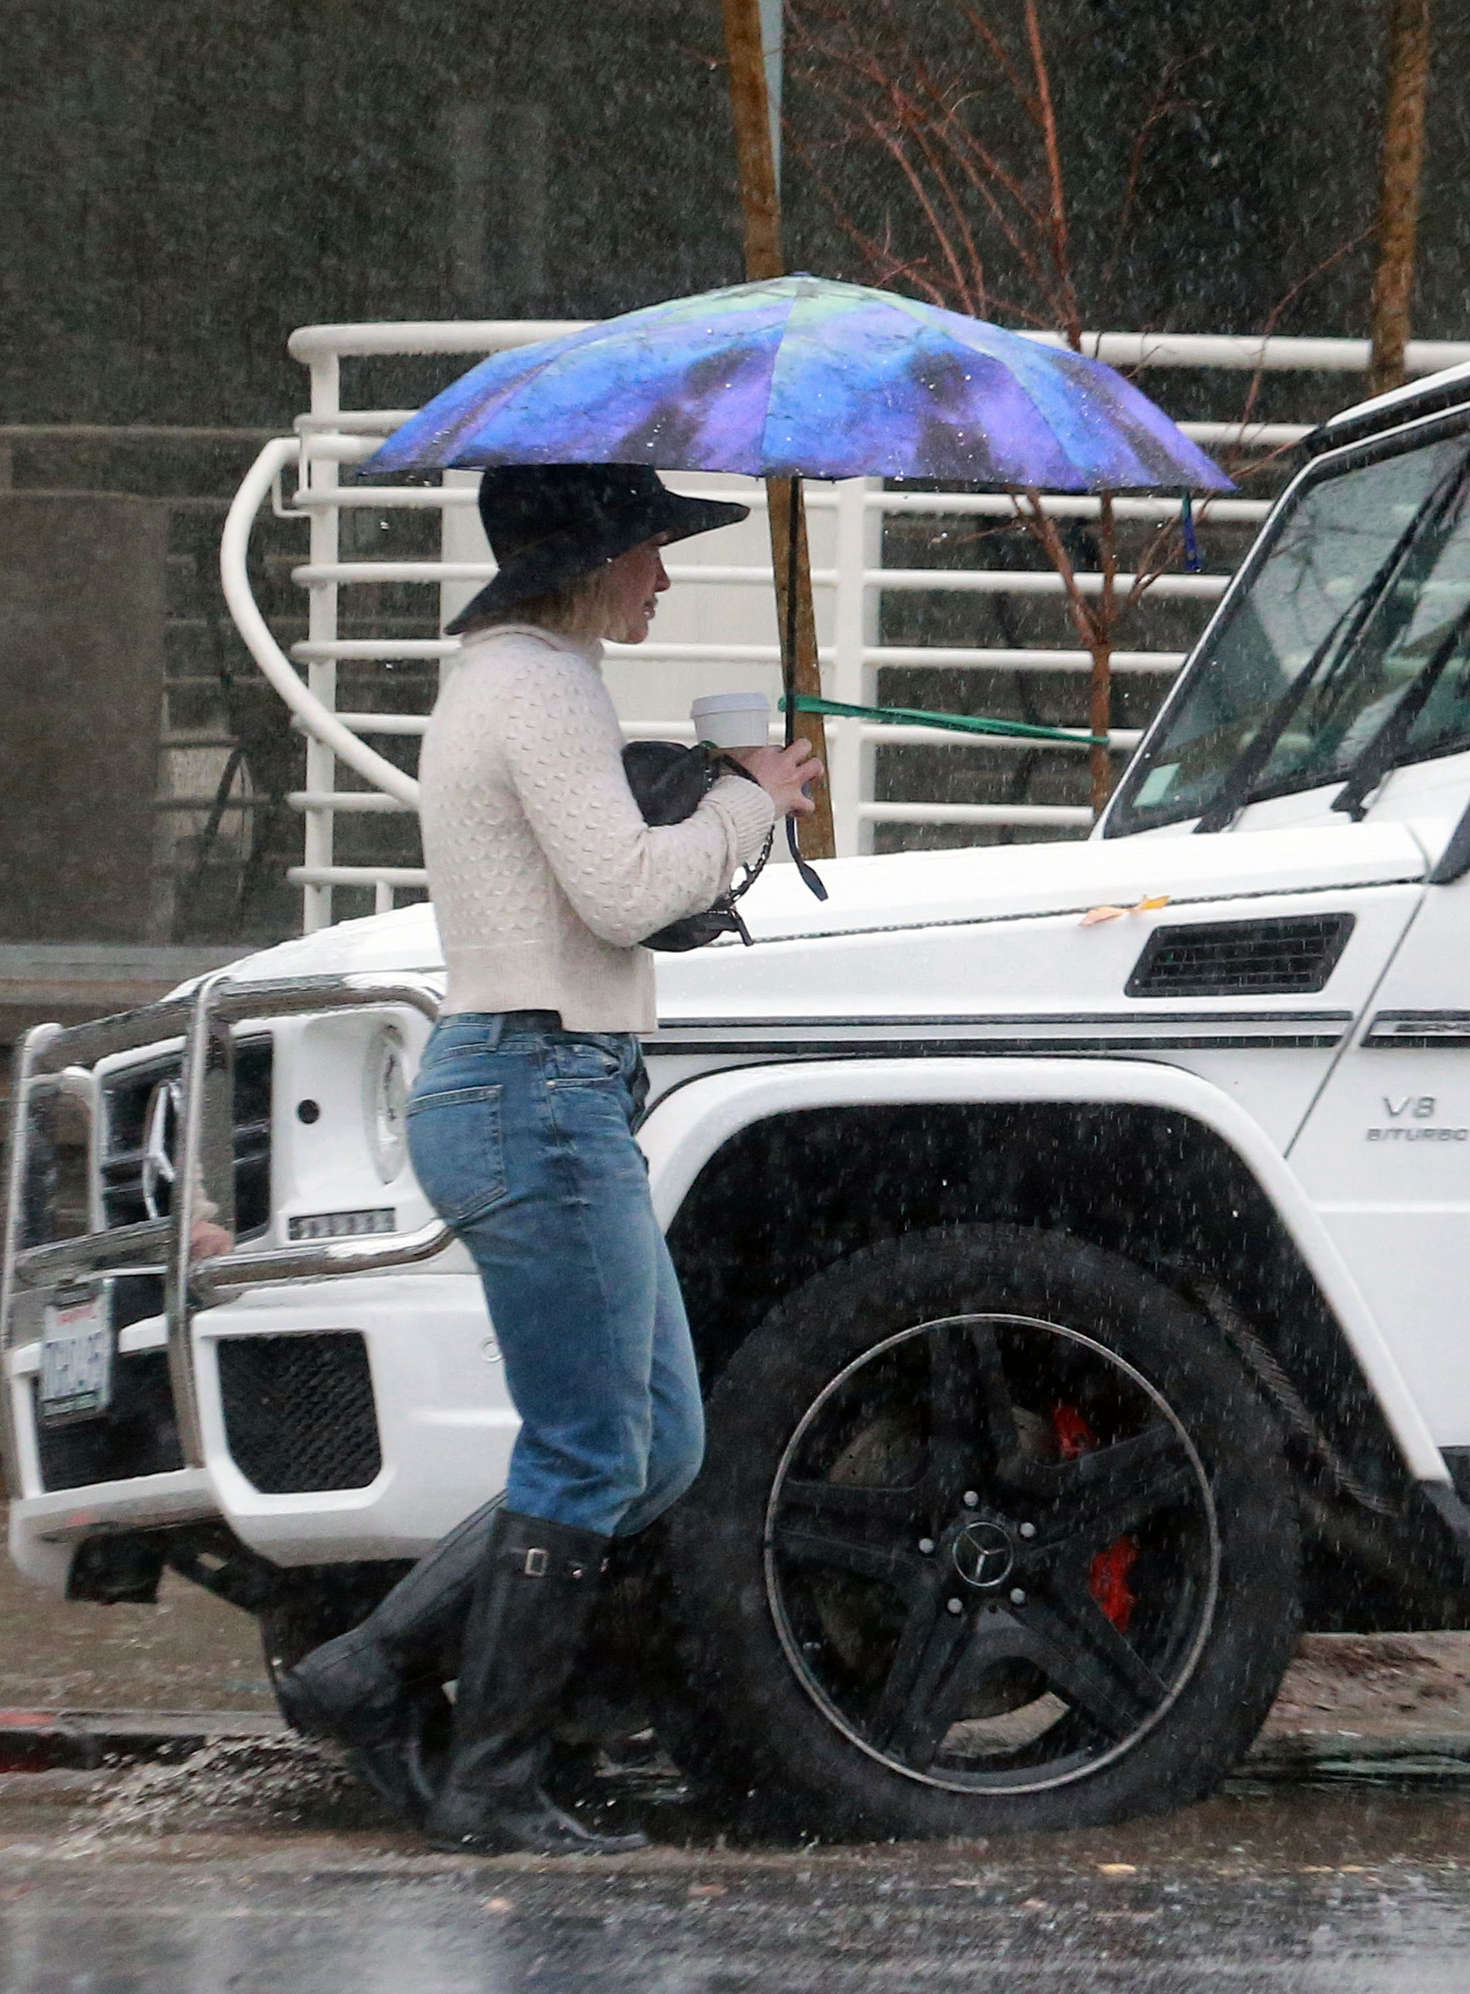 Hilary Duff 2016 : Hilary Duff in Jeans out on a rainy day -25